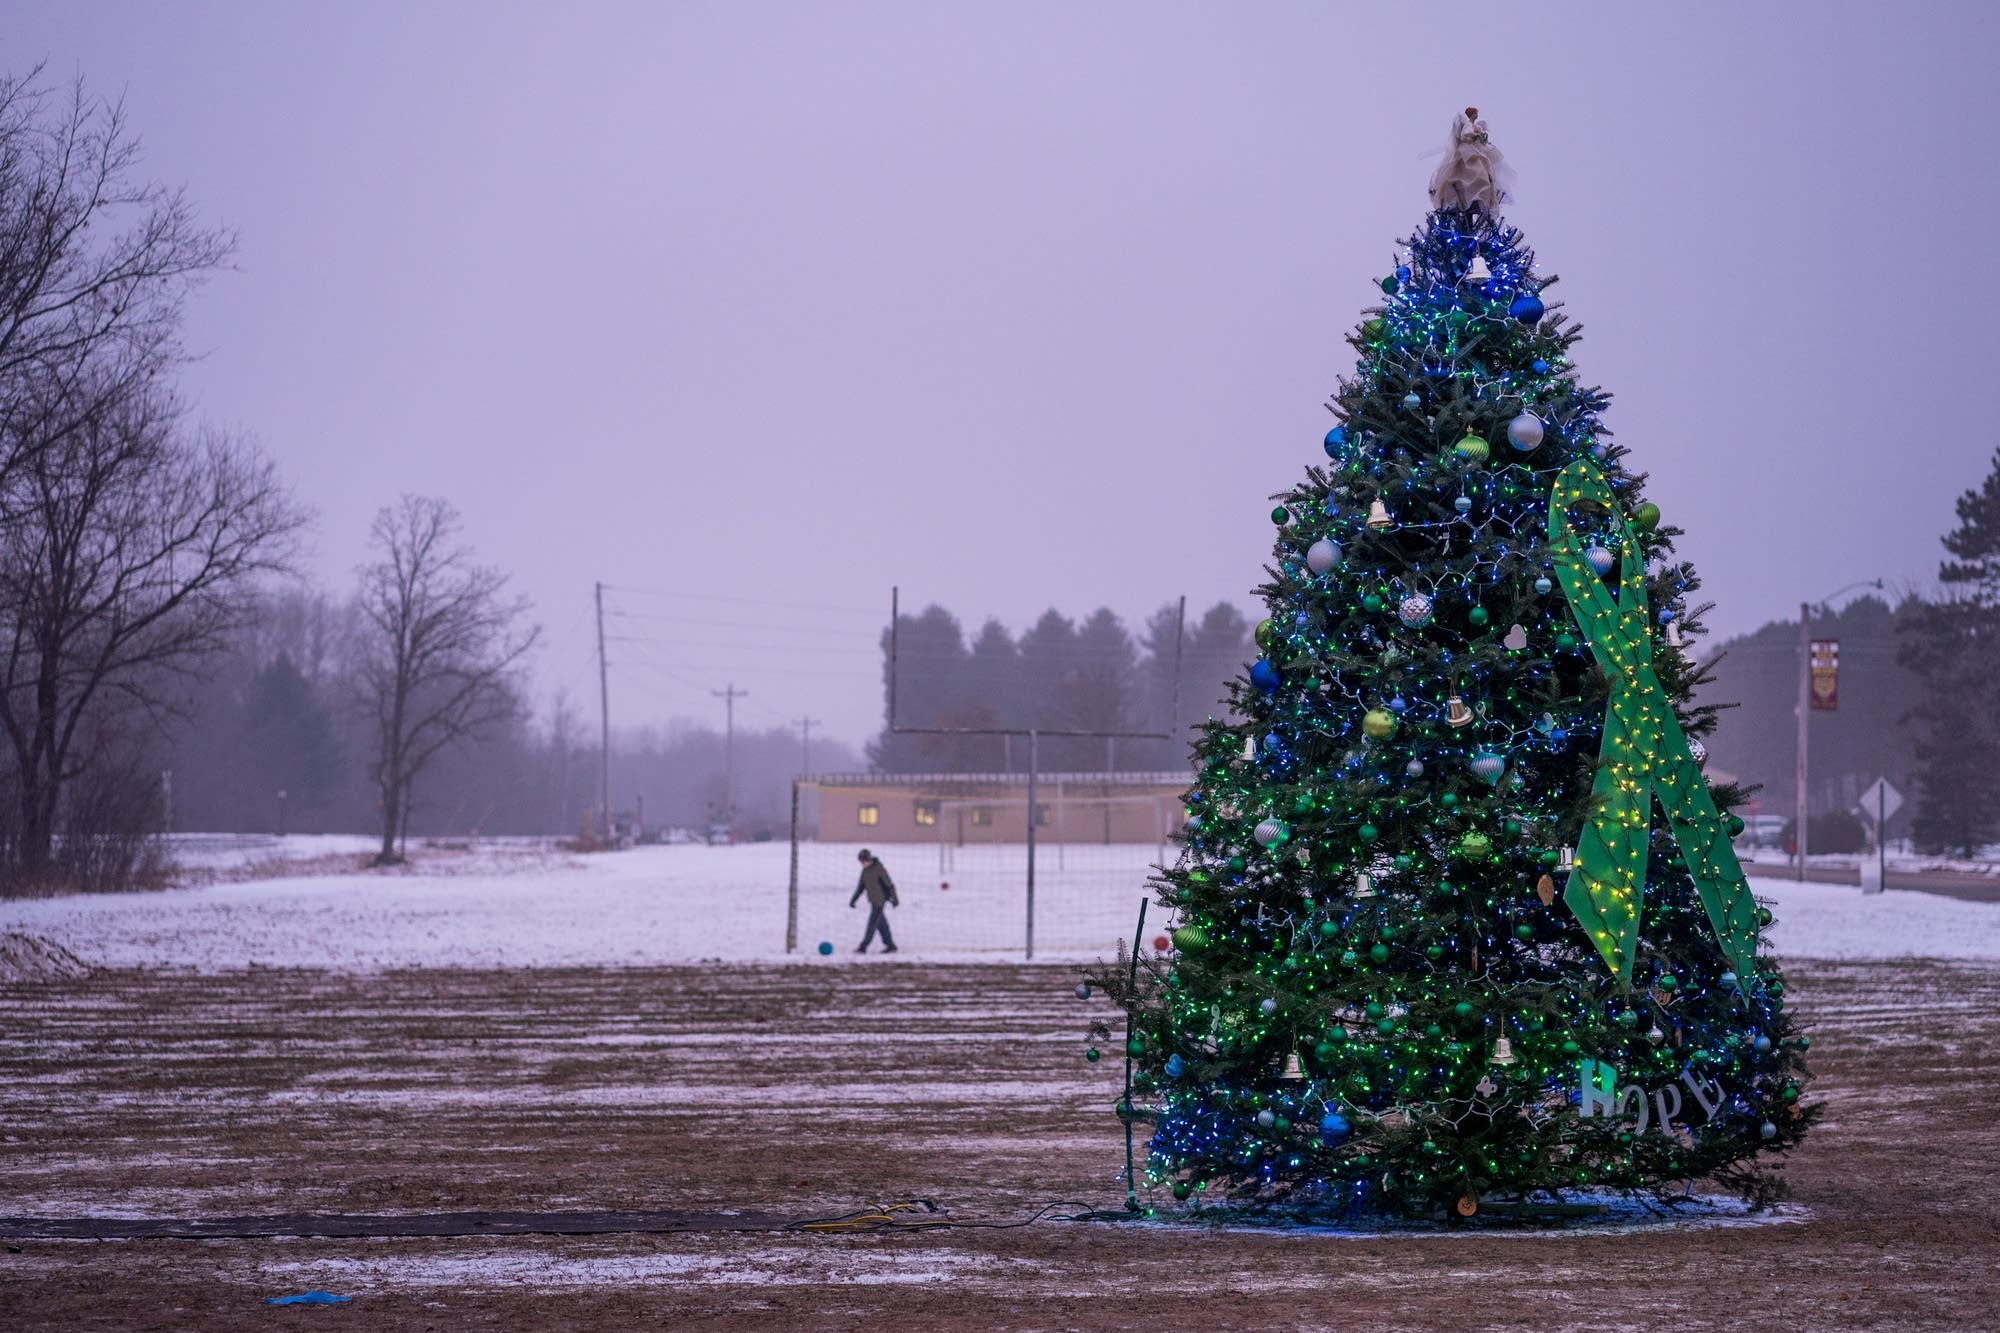 A Christmas tree decorated in honor of missing 13-year-old Jayme Closs.